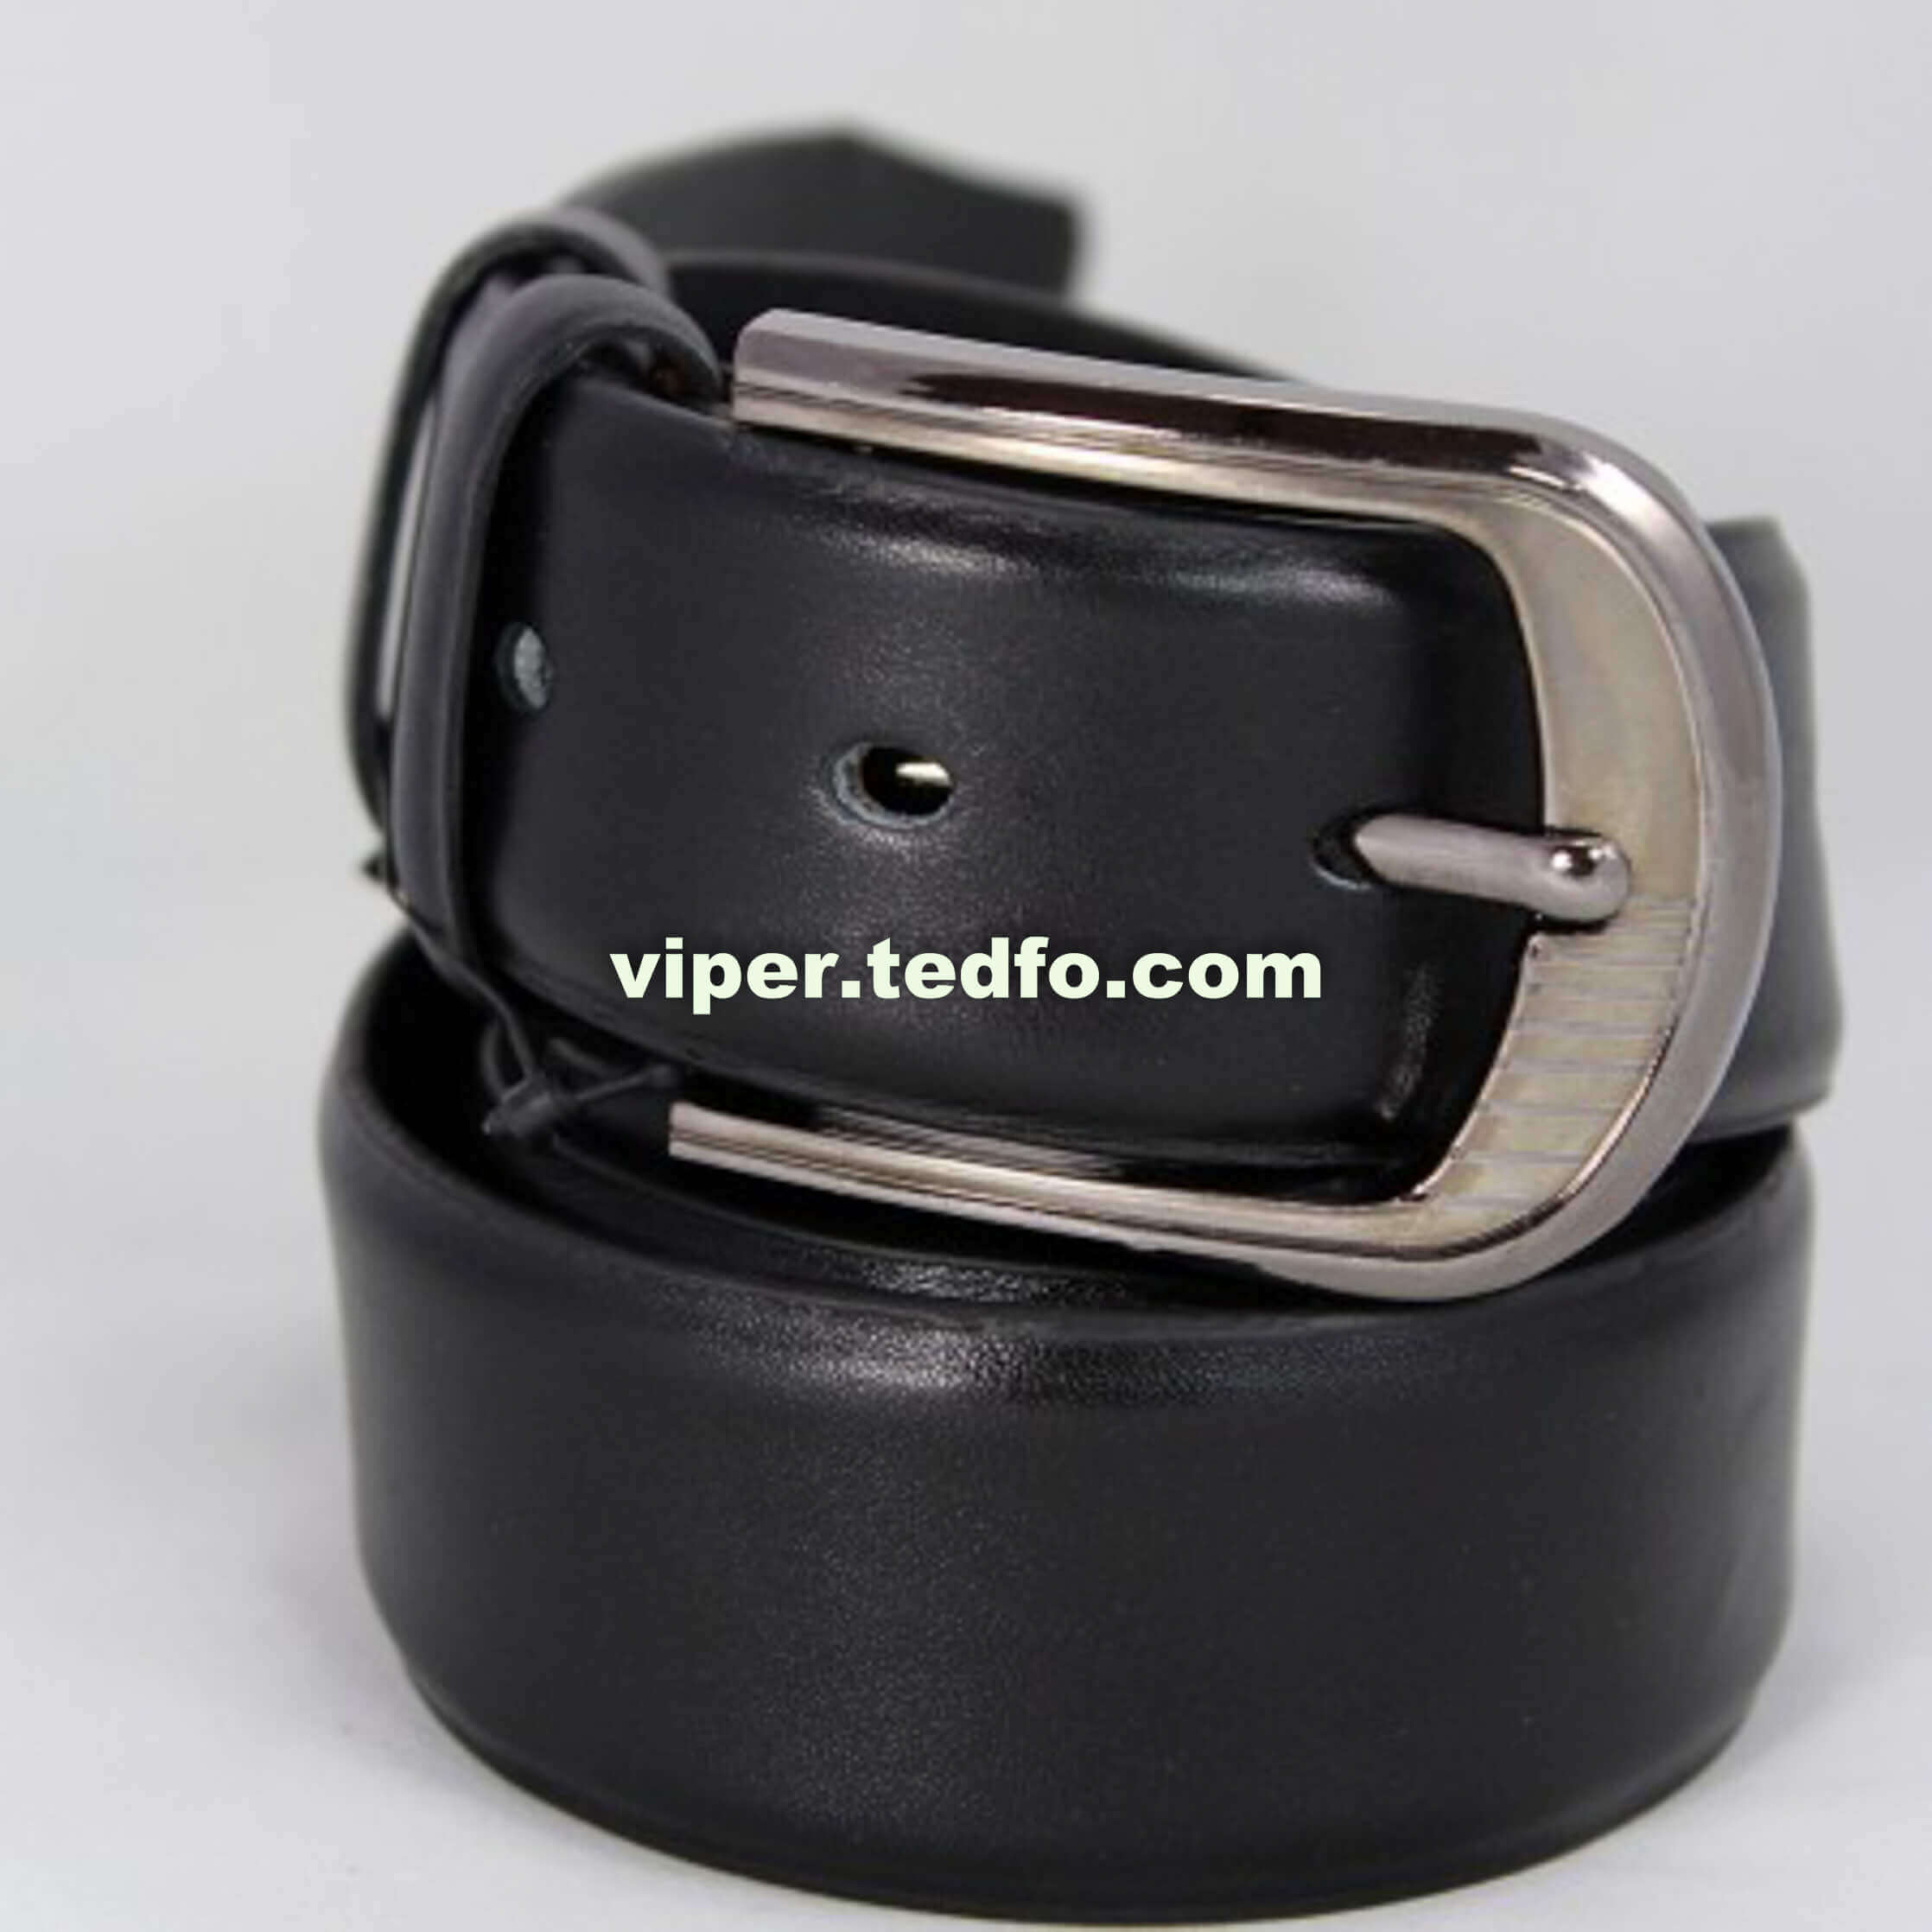 branded mens leather belts,grey belts for men,leather belts for men online shopping,best leather belt men,good leather belts for men,real leather belts,Leather Belt